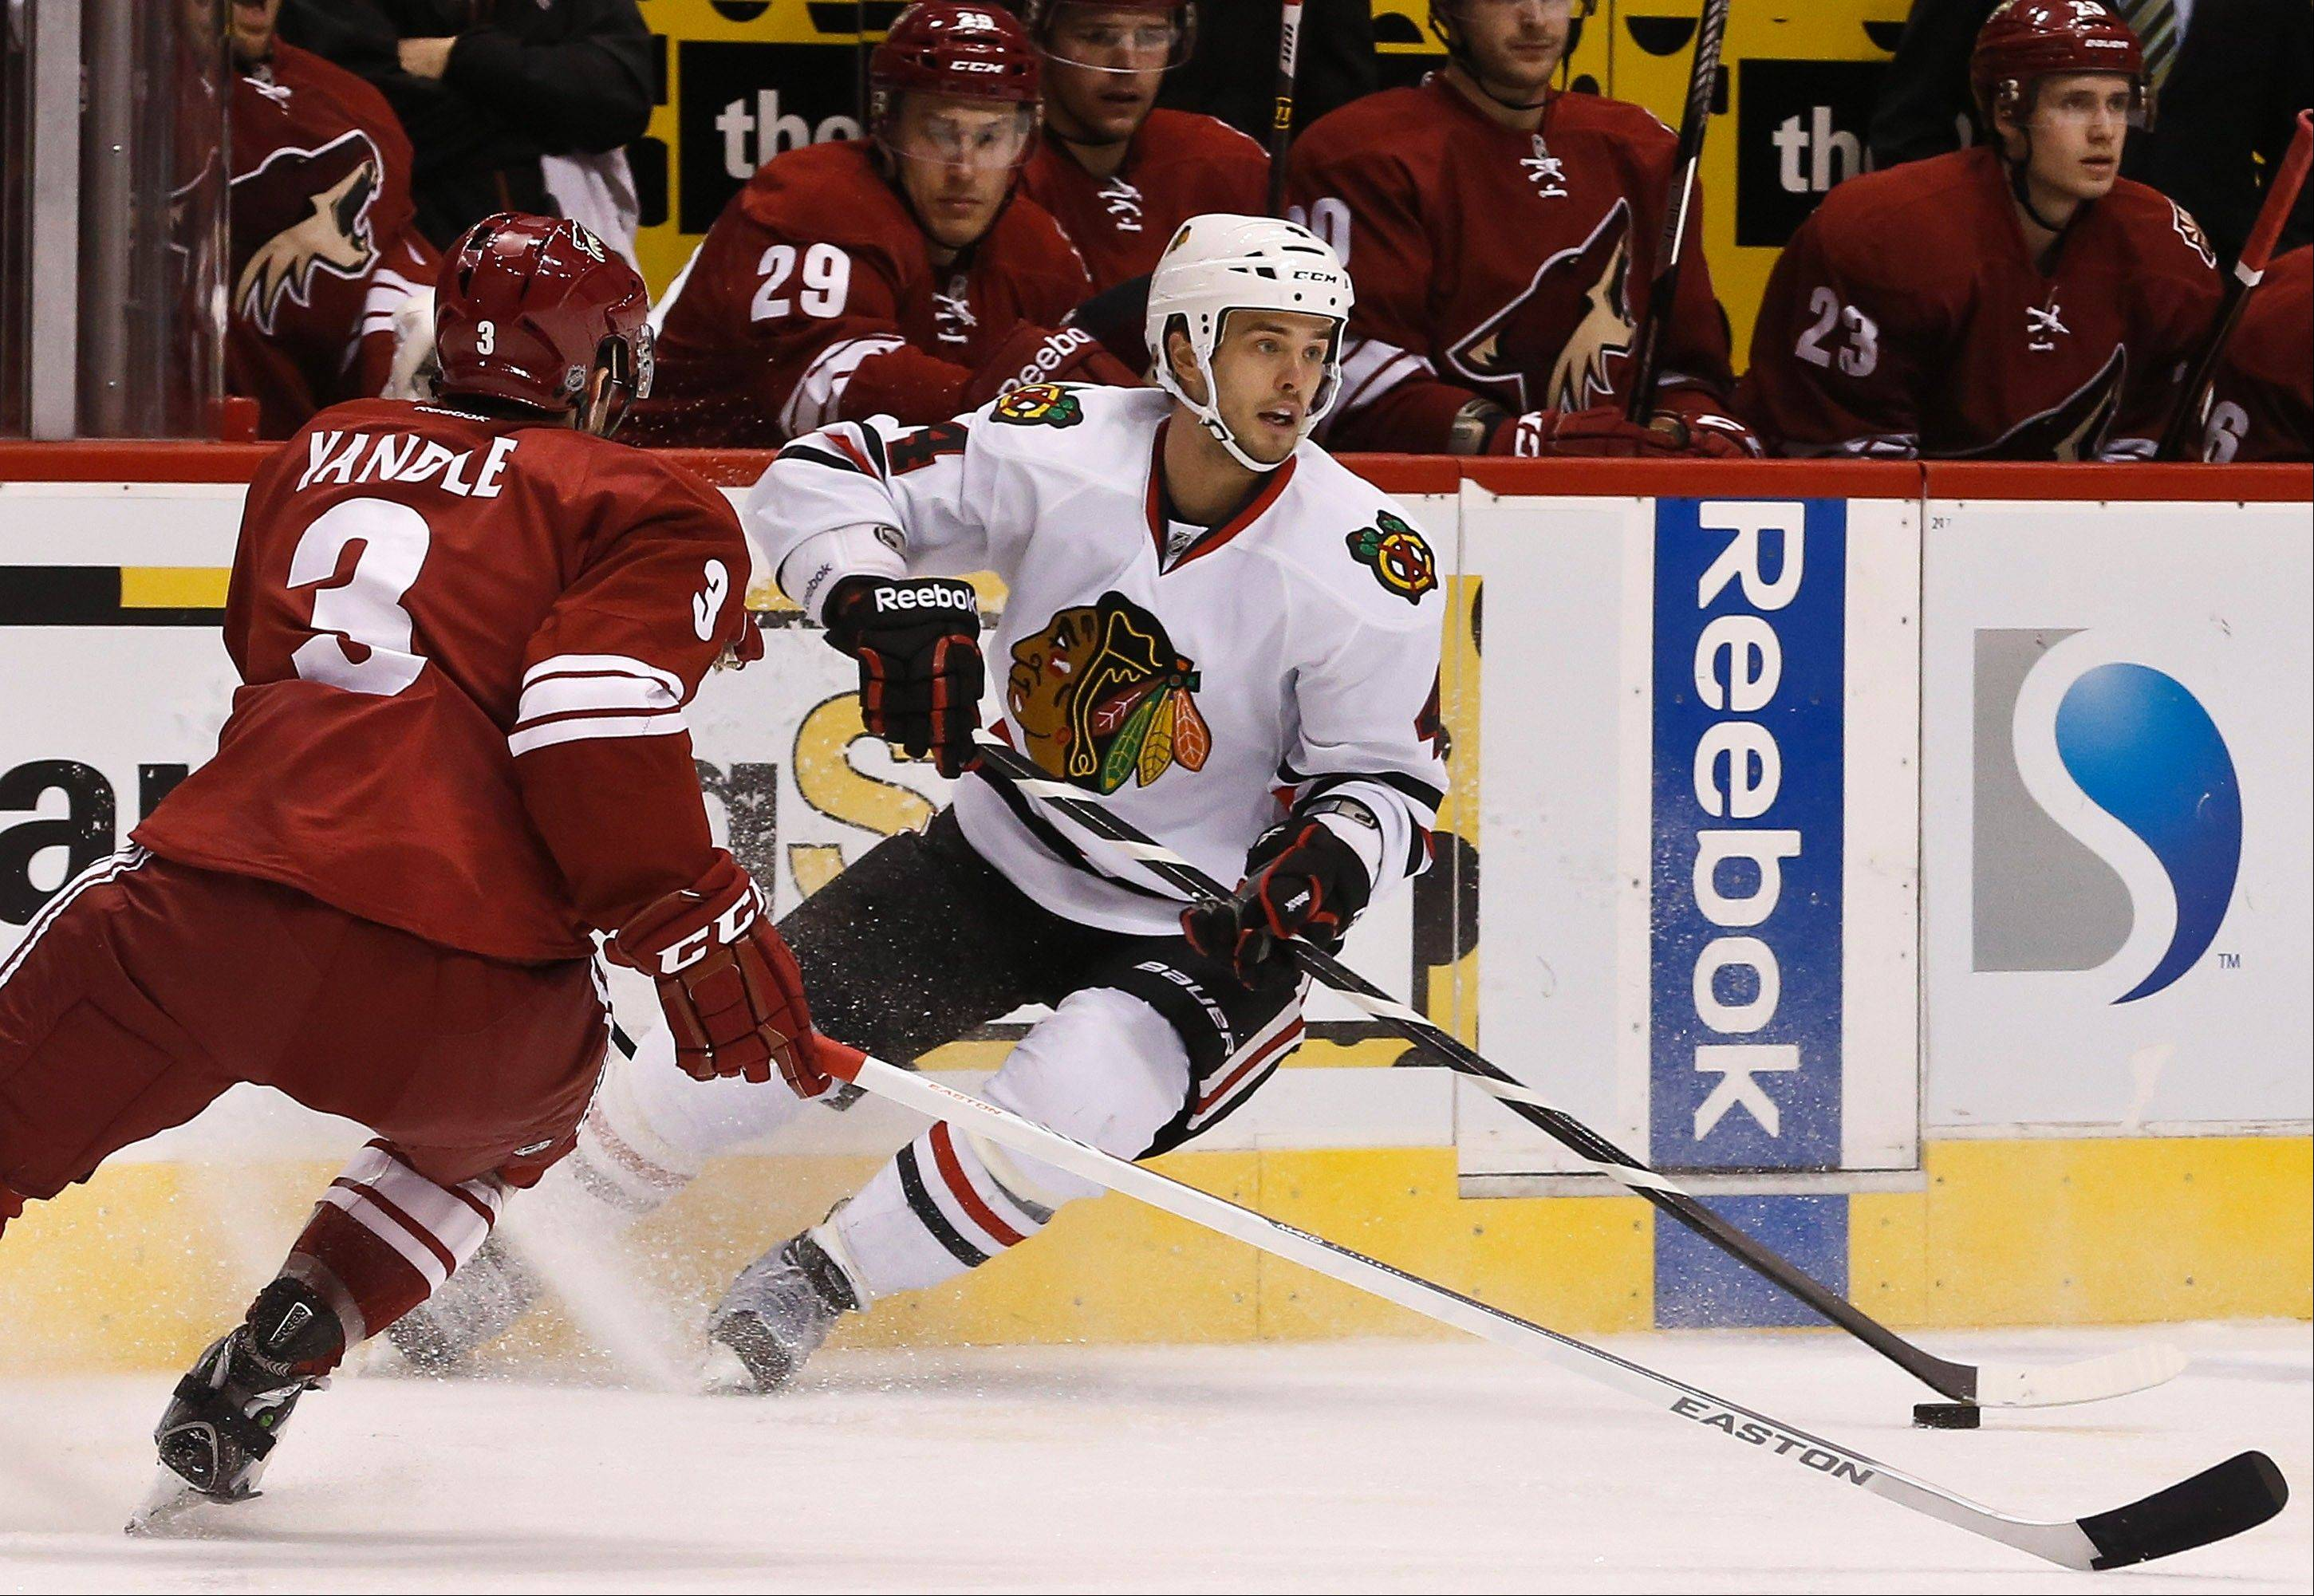 Defenseman Hjalmarsson nails it for Hawks